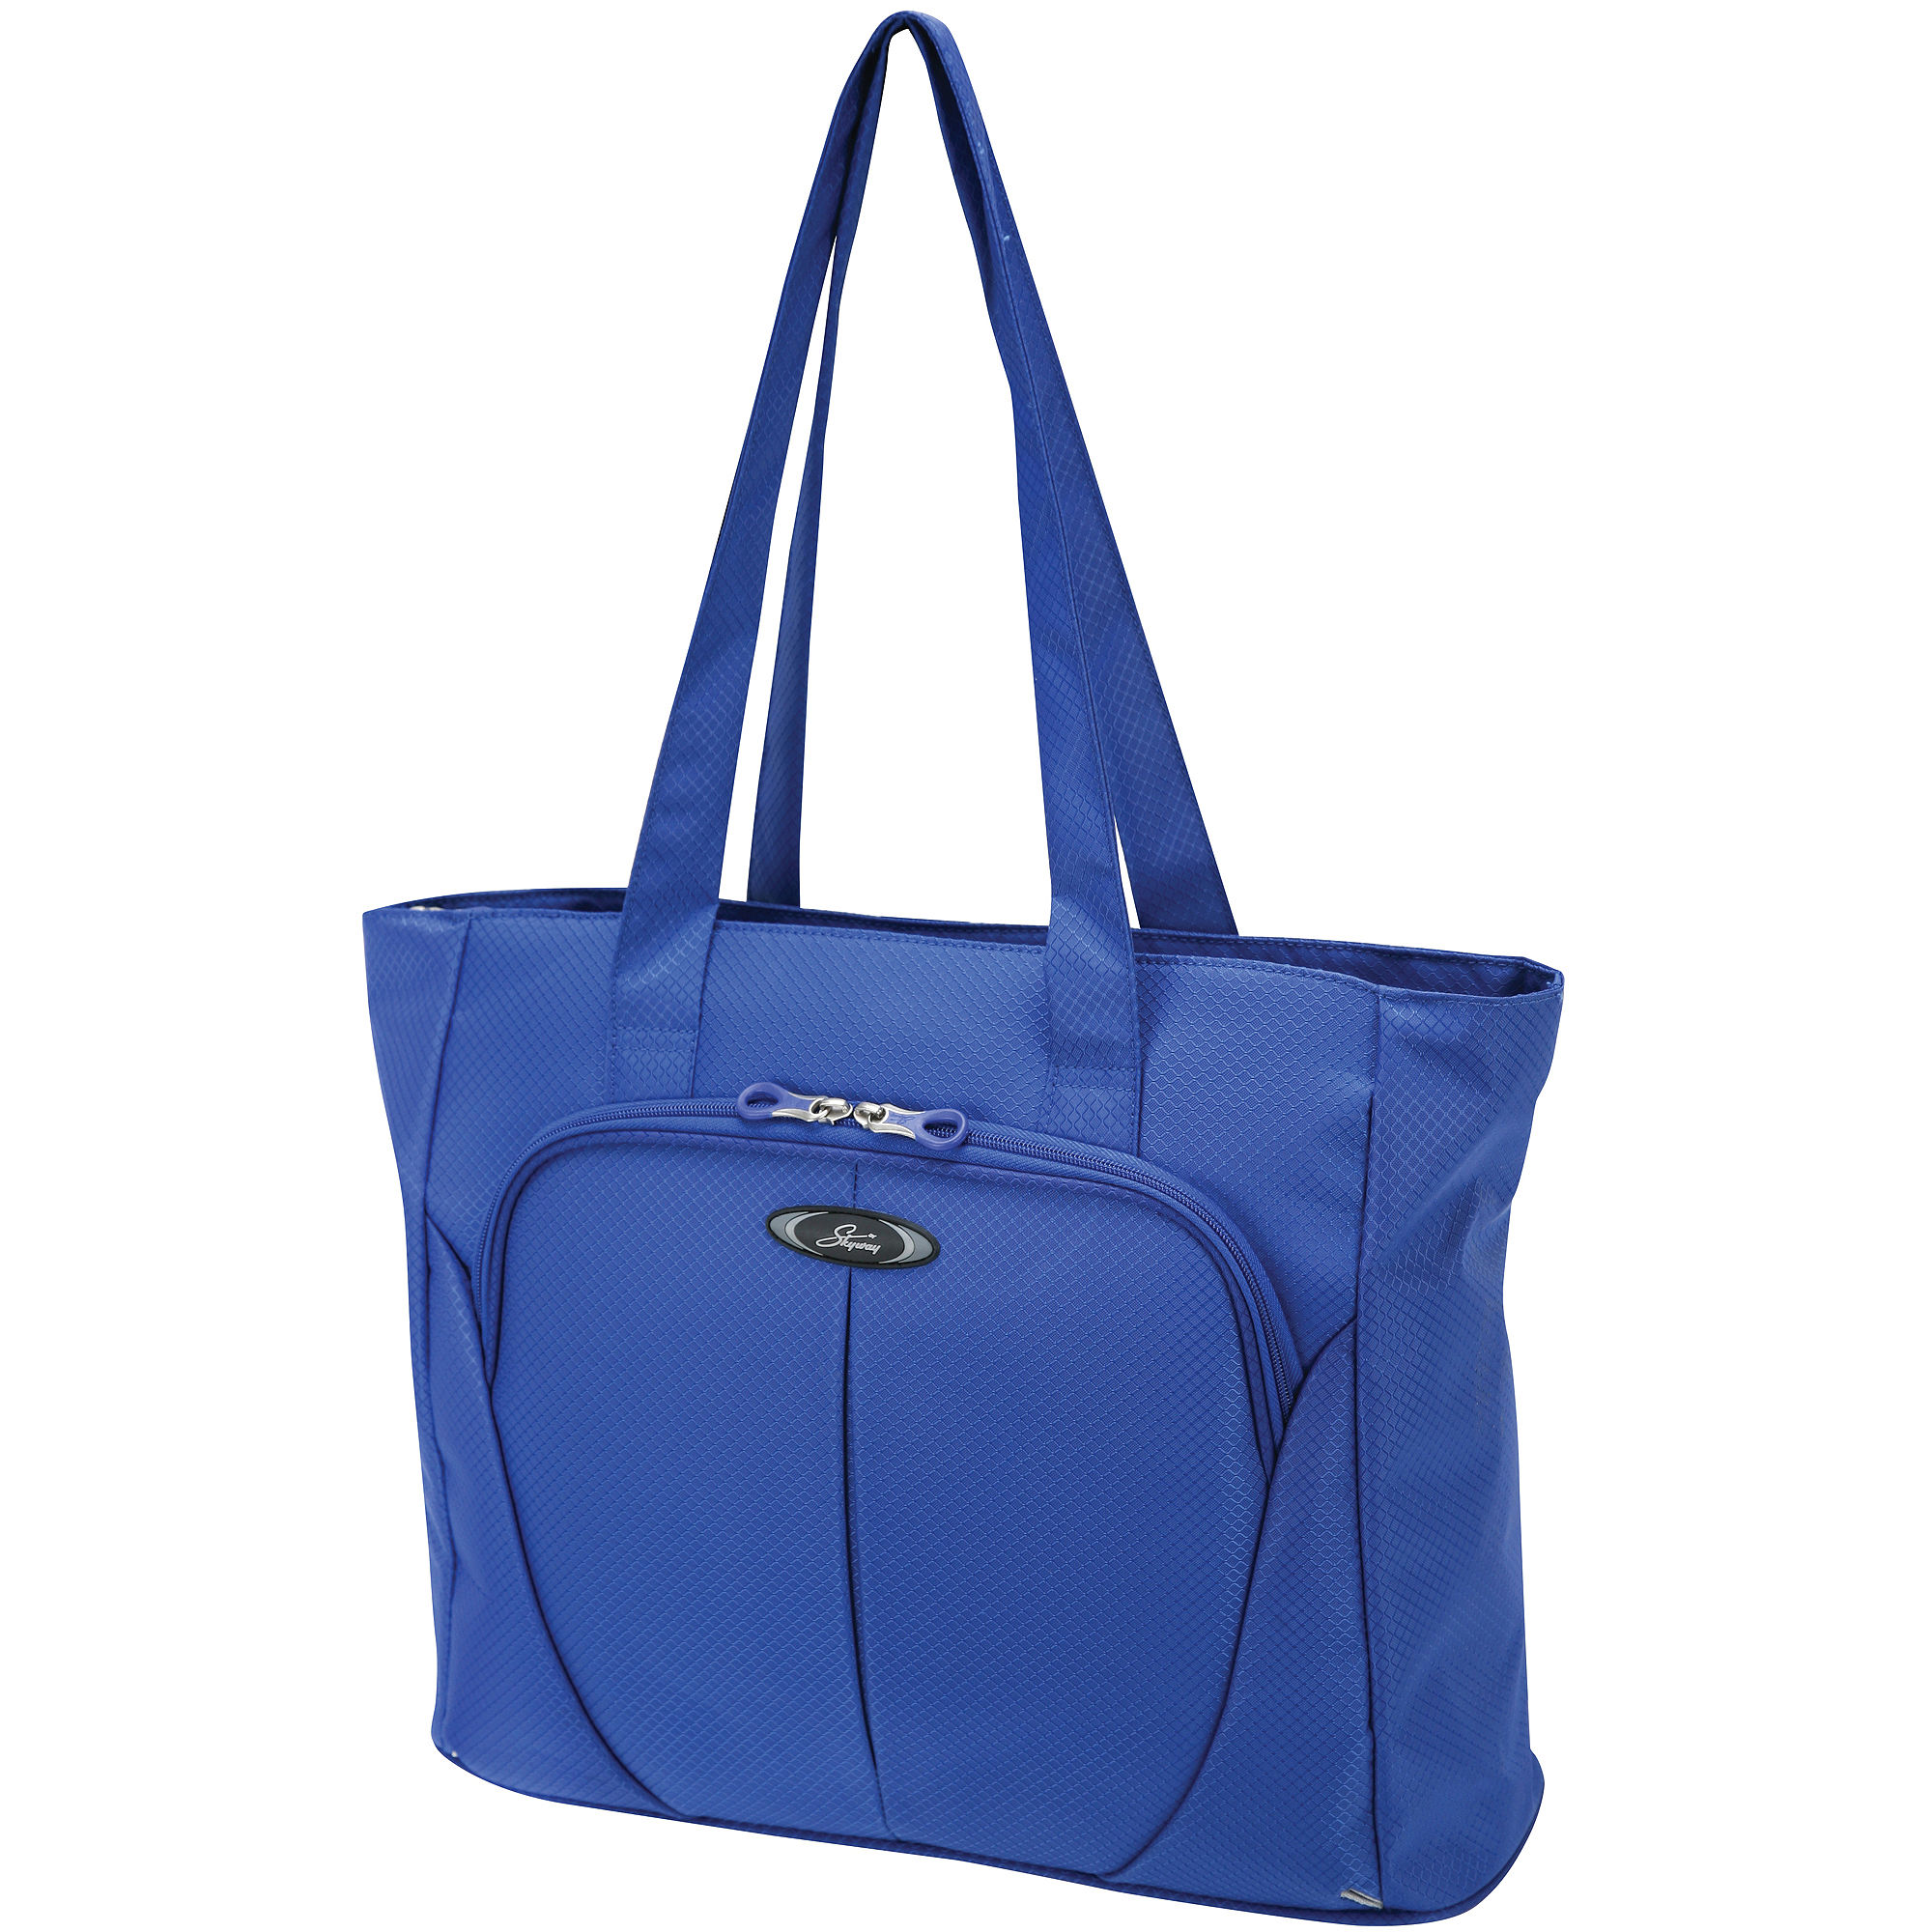 "Skyway Mirage Superlight 18"" Carry-On Shopper Tote"